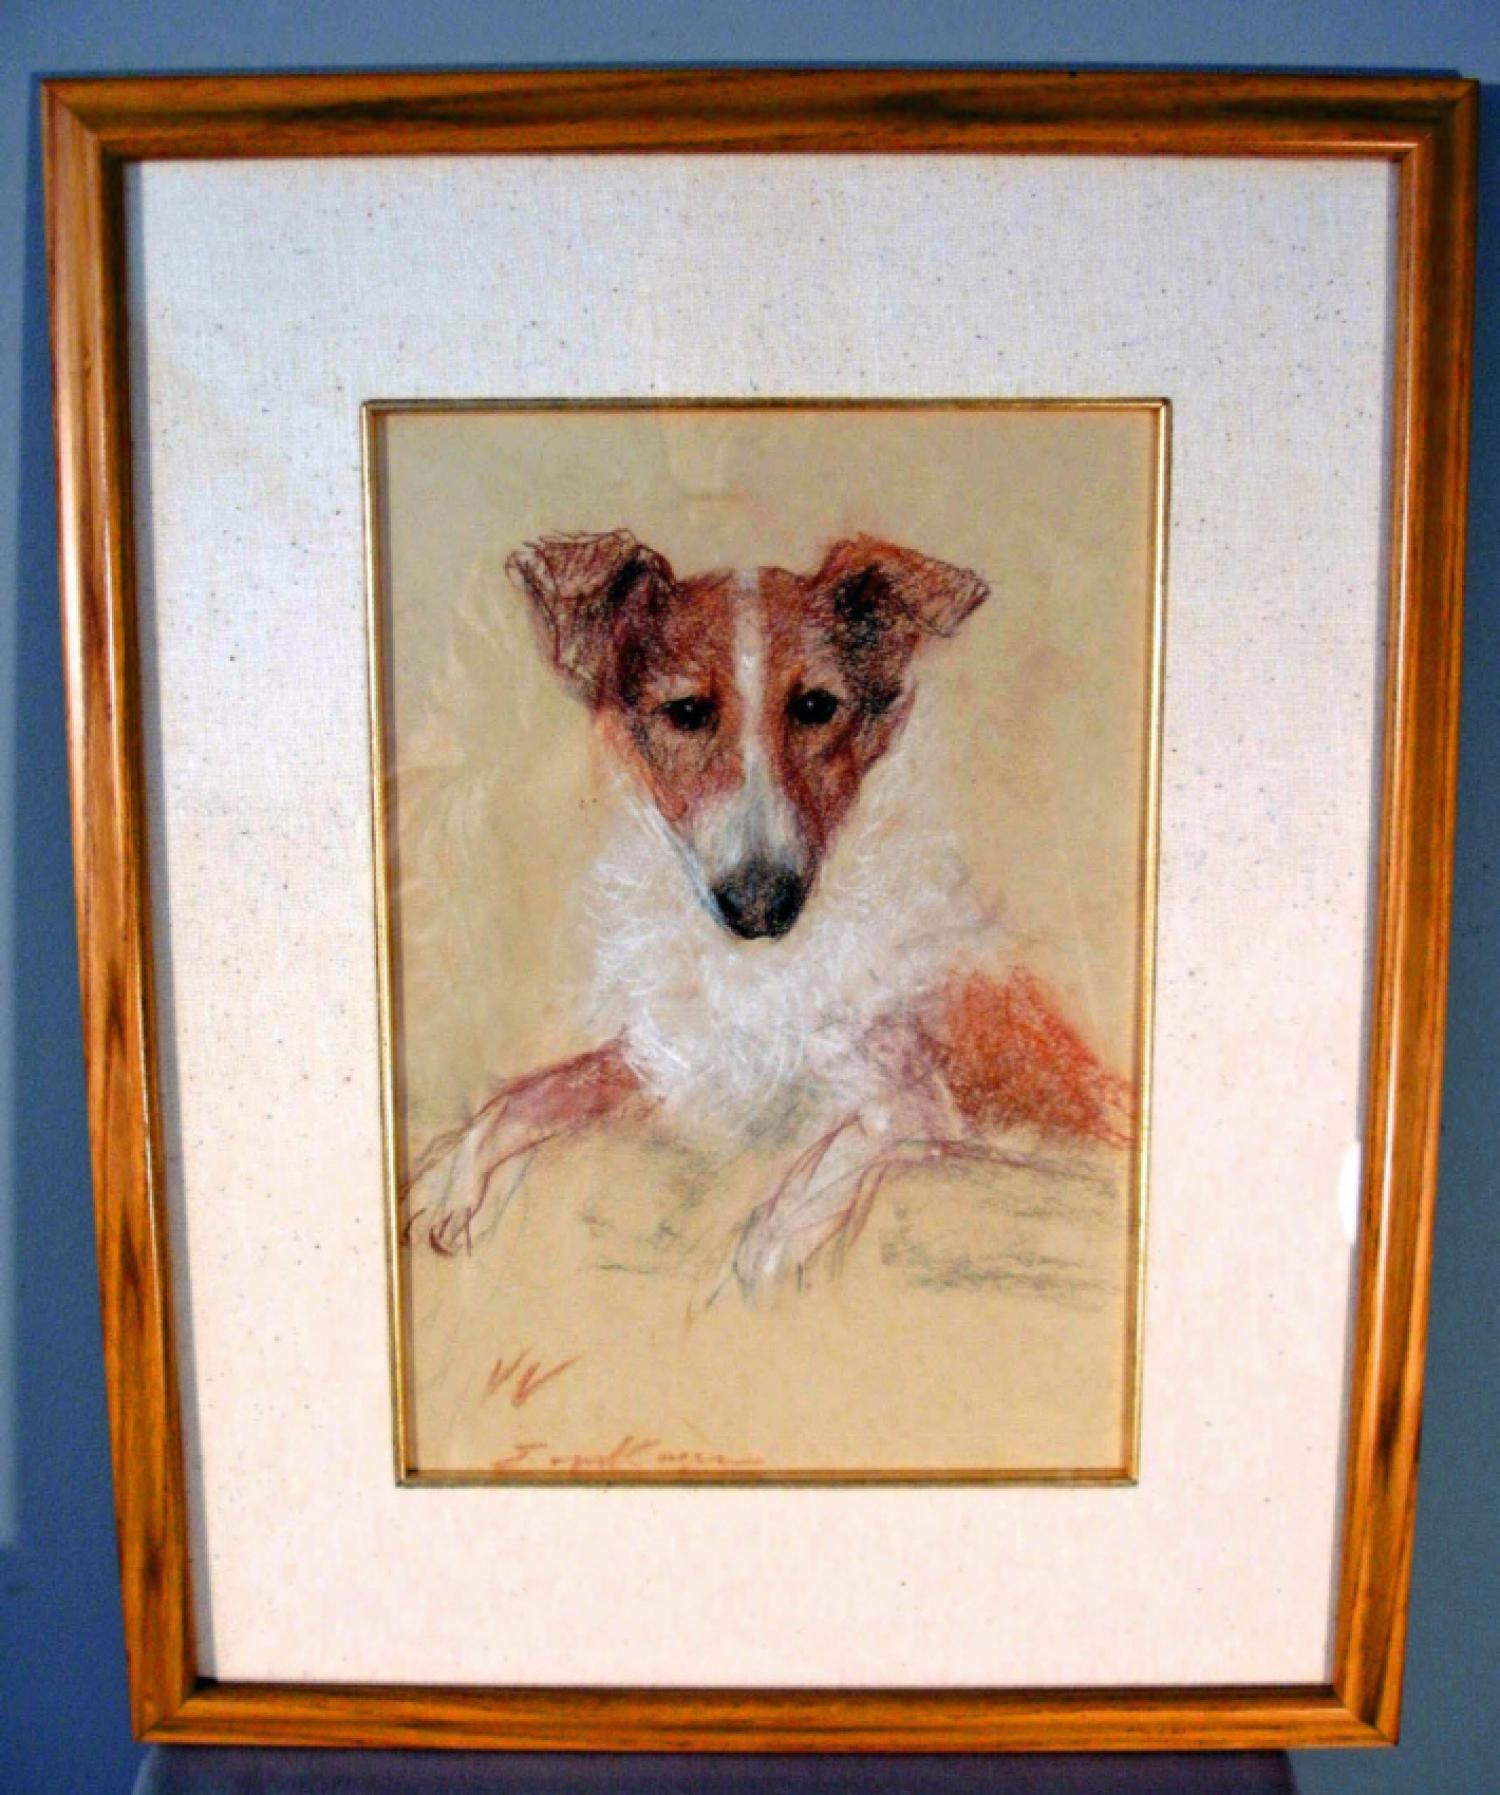 Erica Von Kager pastel portrait of a miniature collie